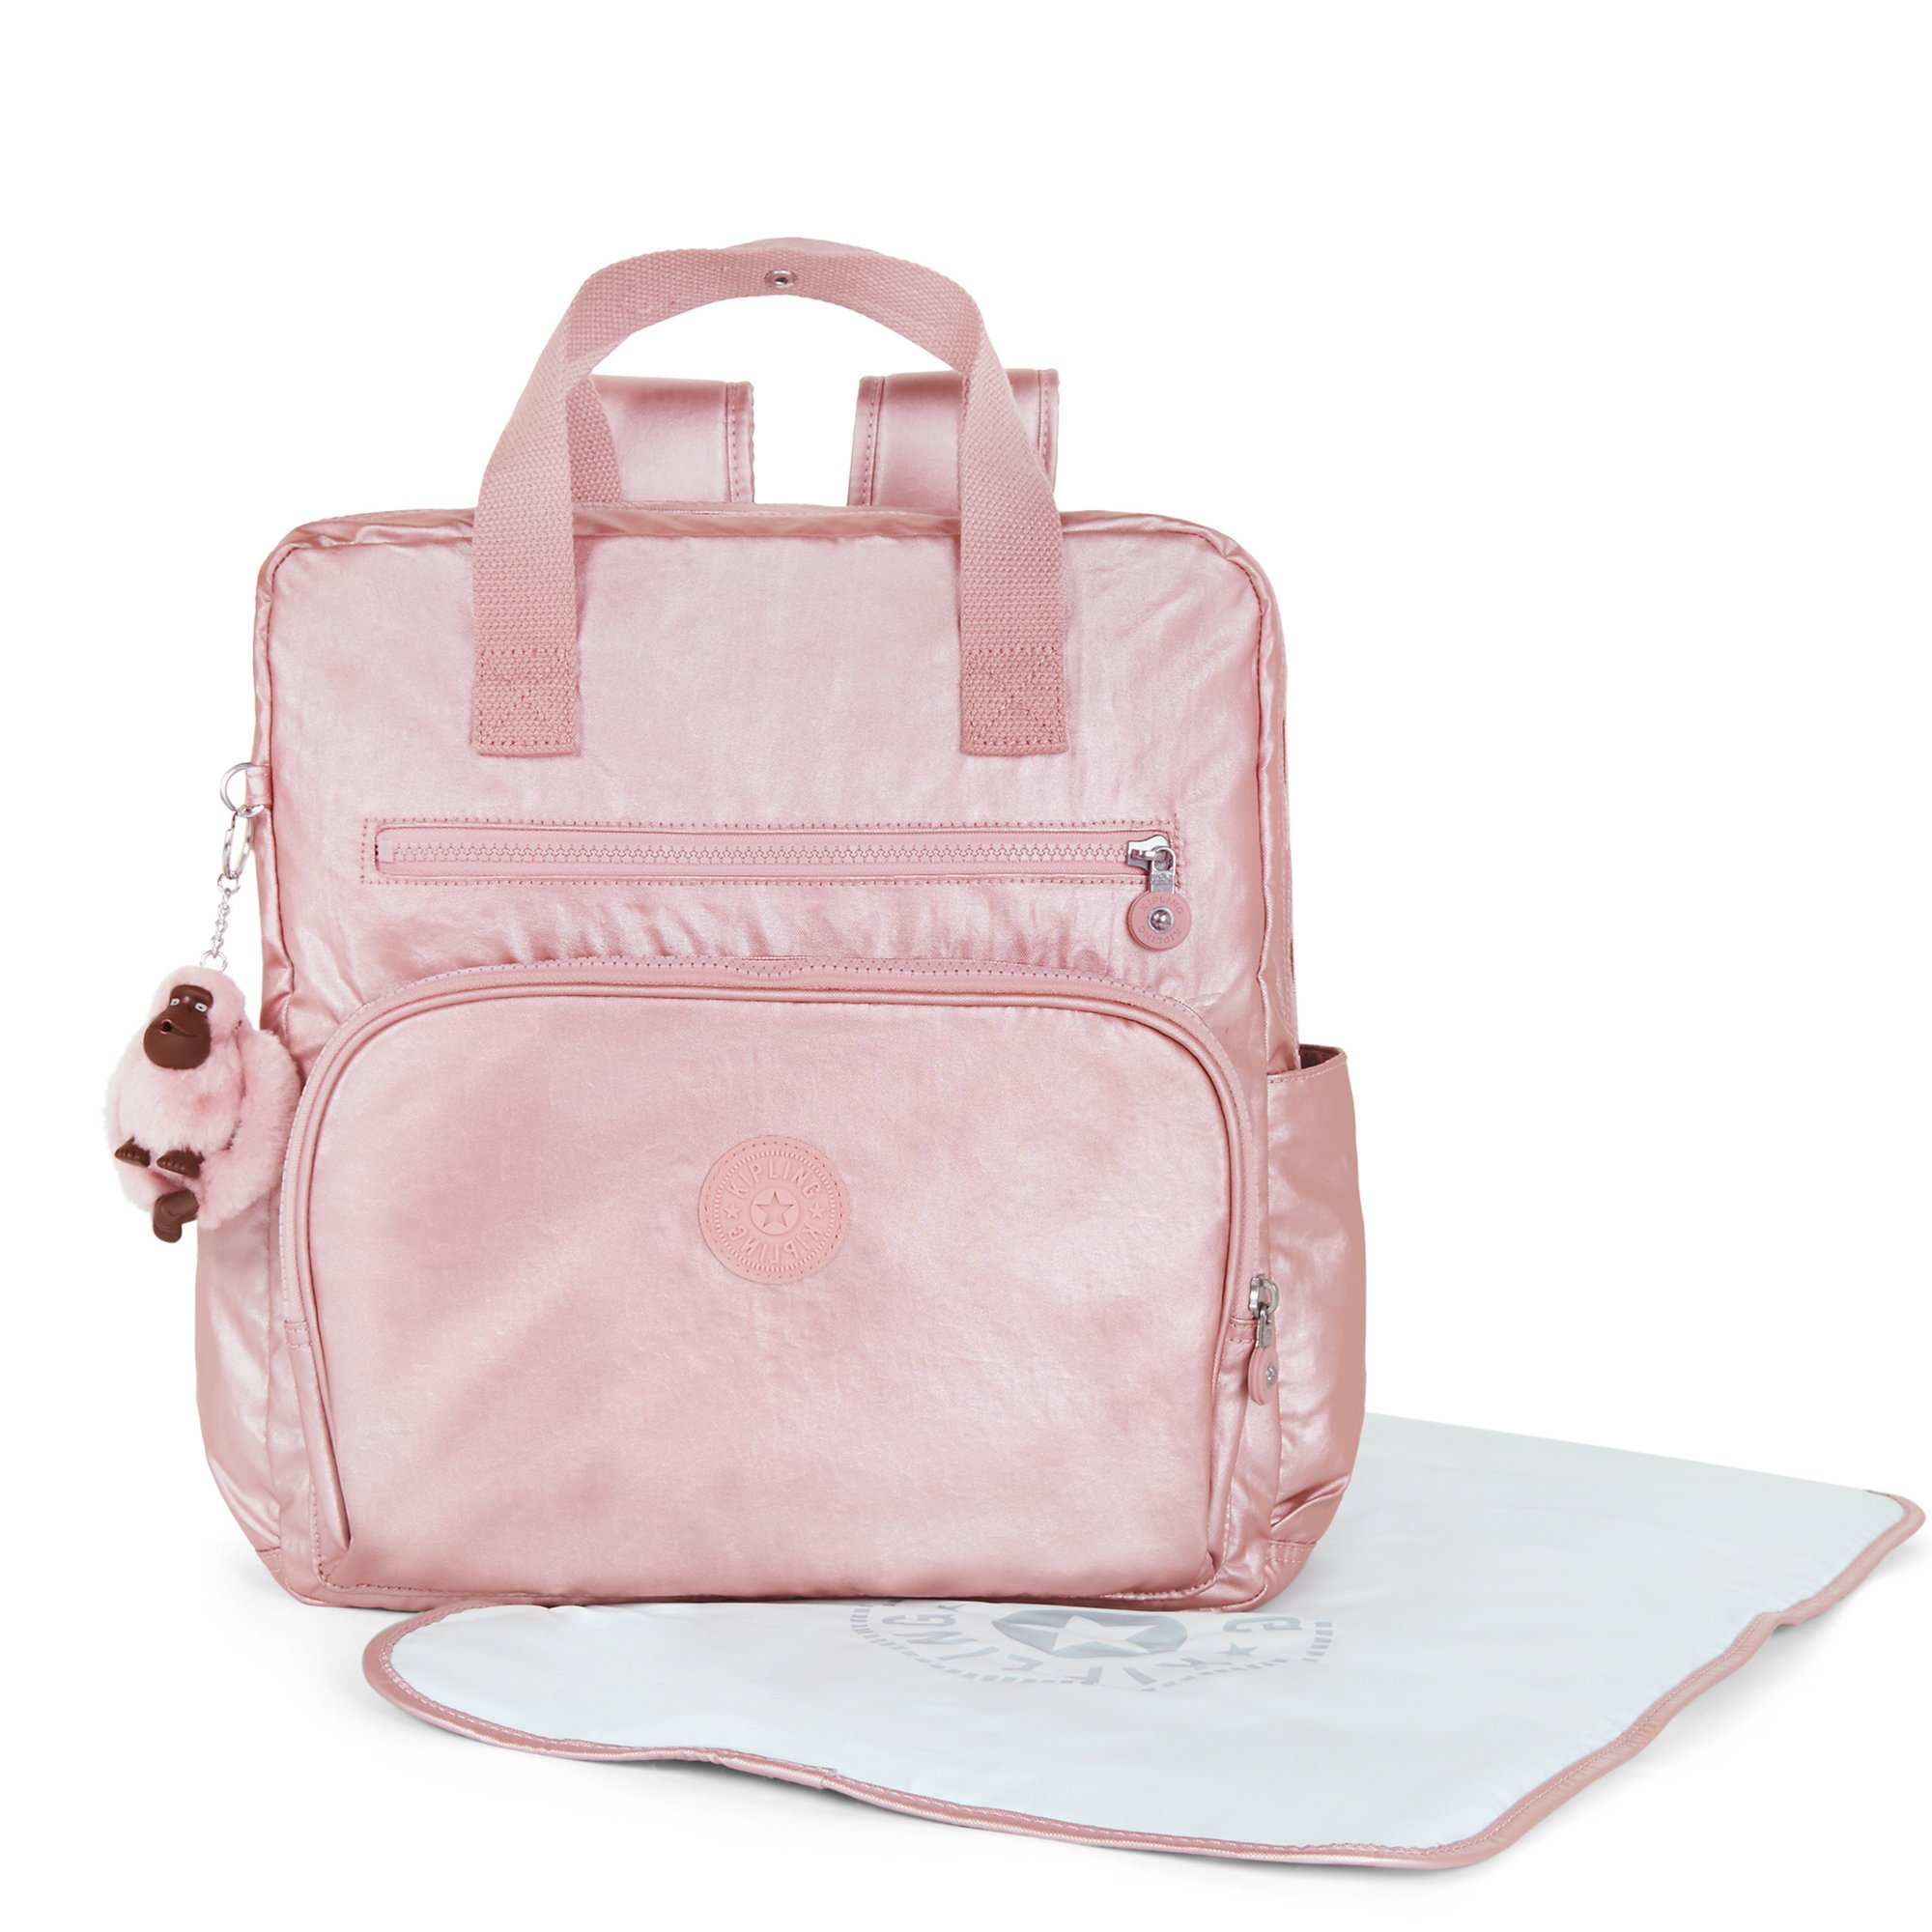 Kipling Women's Audrie Metallic Diaper Bag One Size Icy Rose Metallic